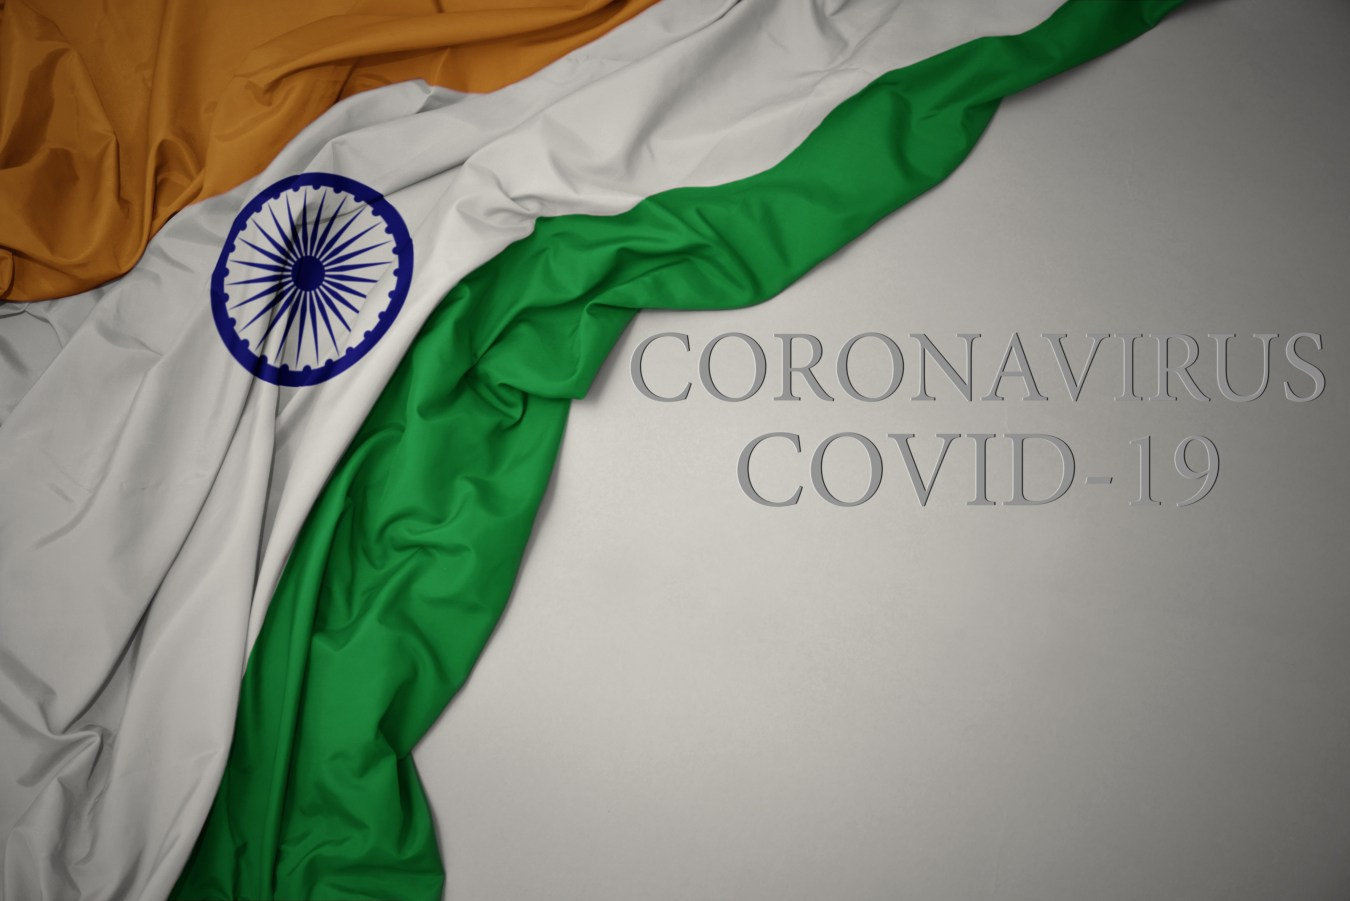 waving colorful national flag of india on a gray background with text coronavirus covid-19 . concept.. COVID-19 cases in India illustration. Indian COVID-19 cases concept. Cases of COVID-19 crisis in India concept. Image credit: luzitanija / 123rf